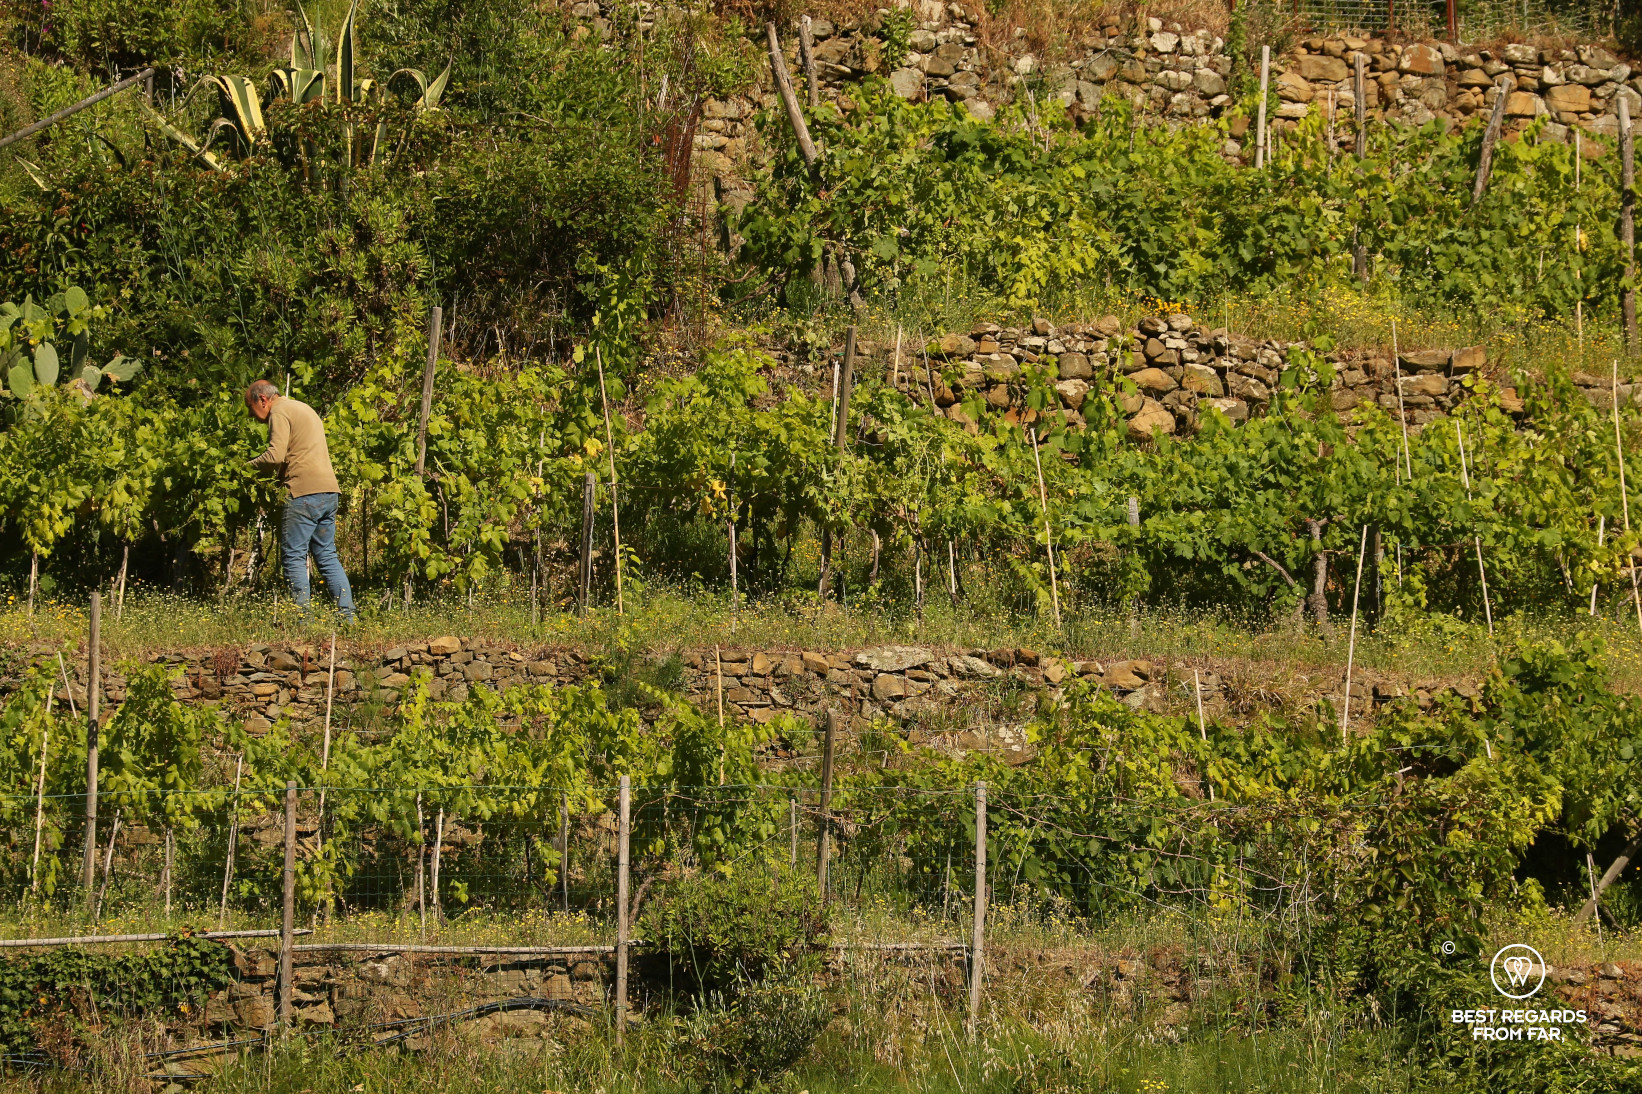 Man working his terraced vineyard in Cinque Terre, Italy